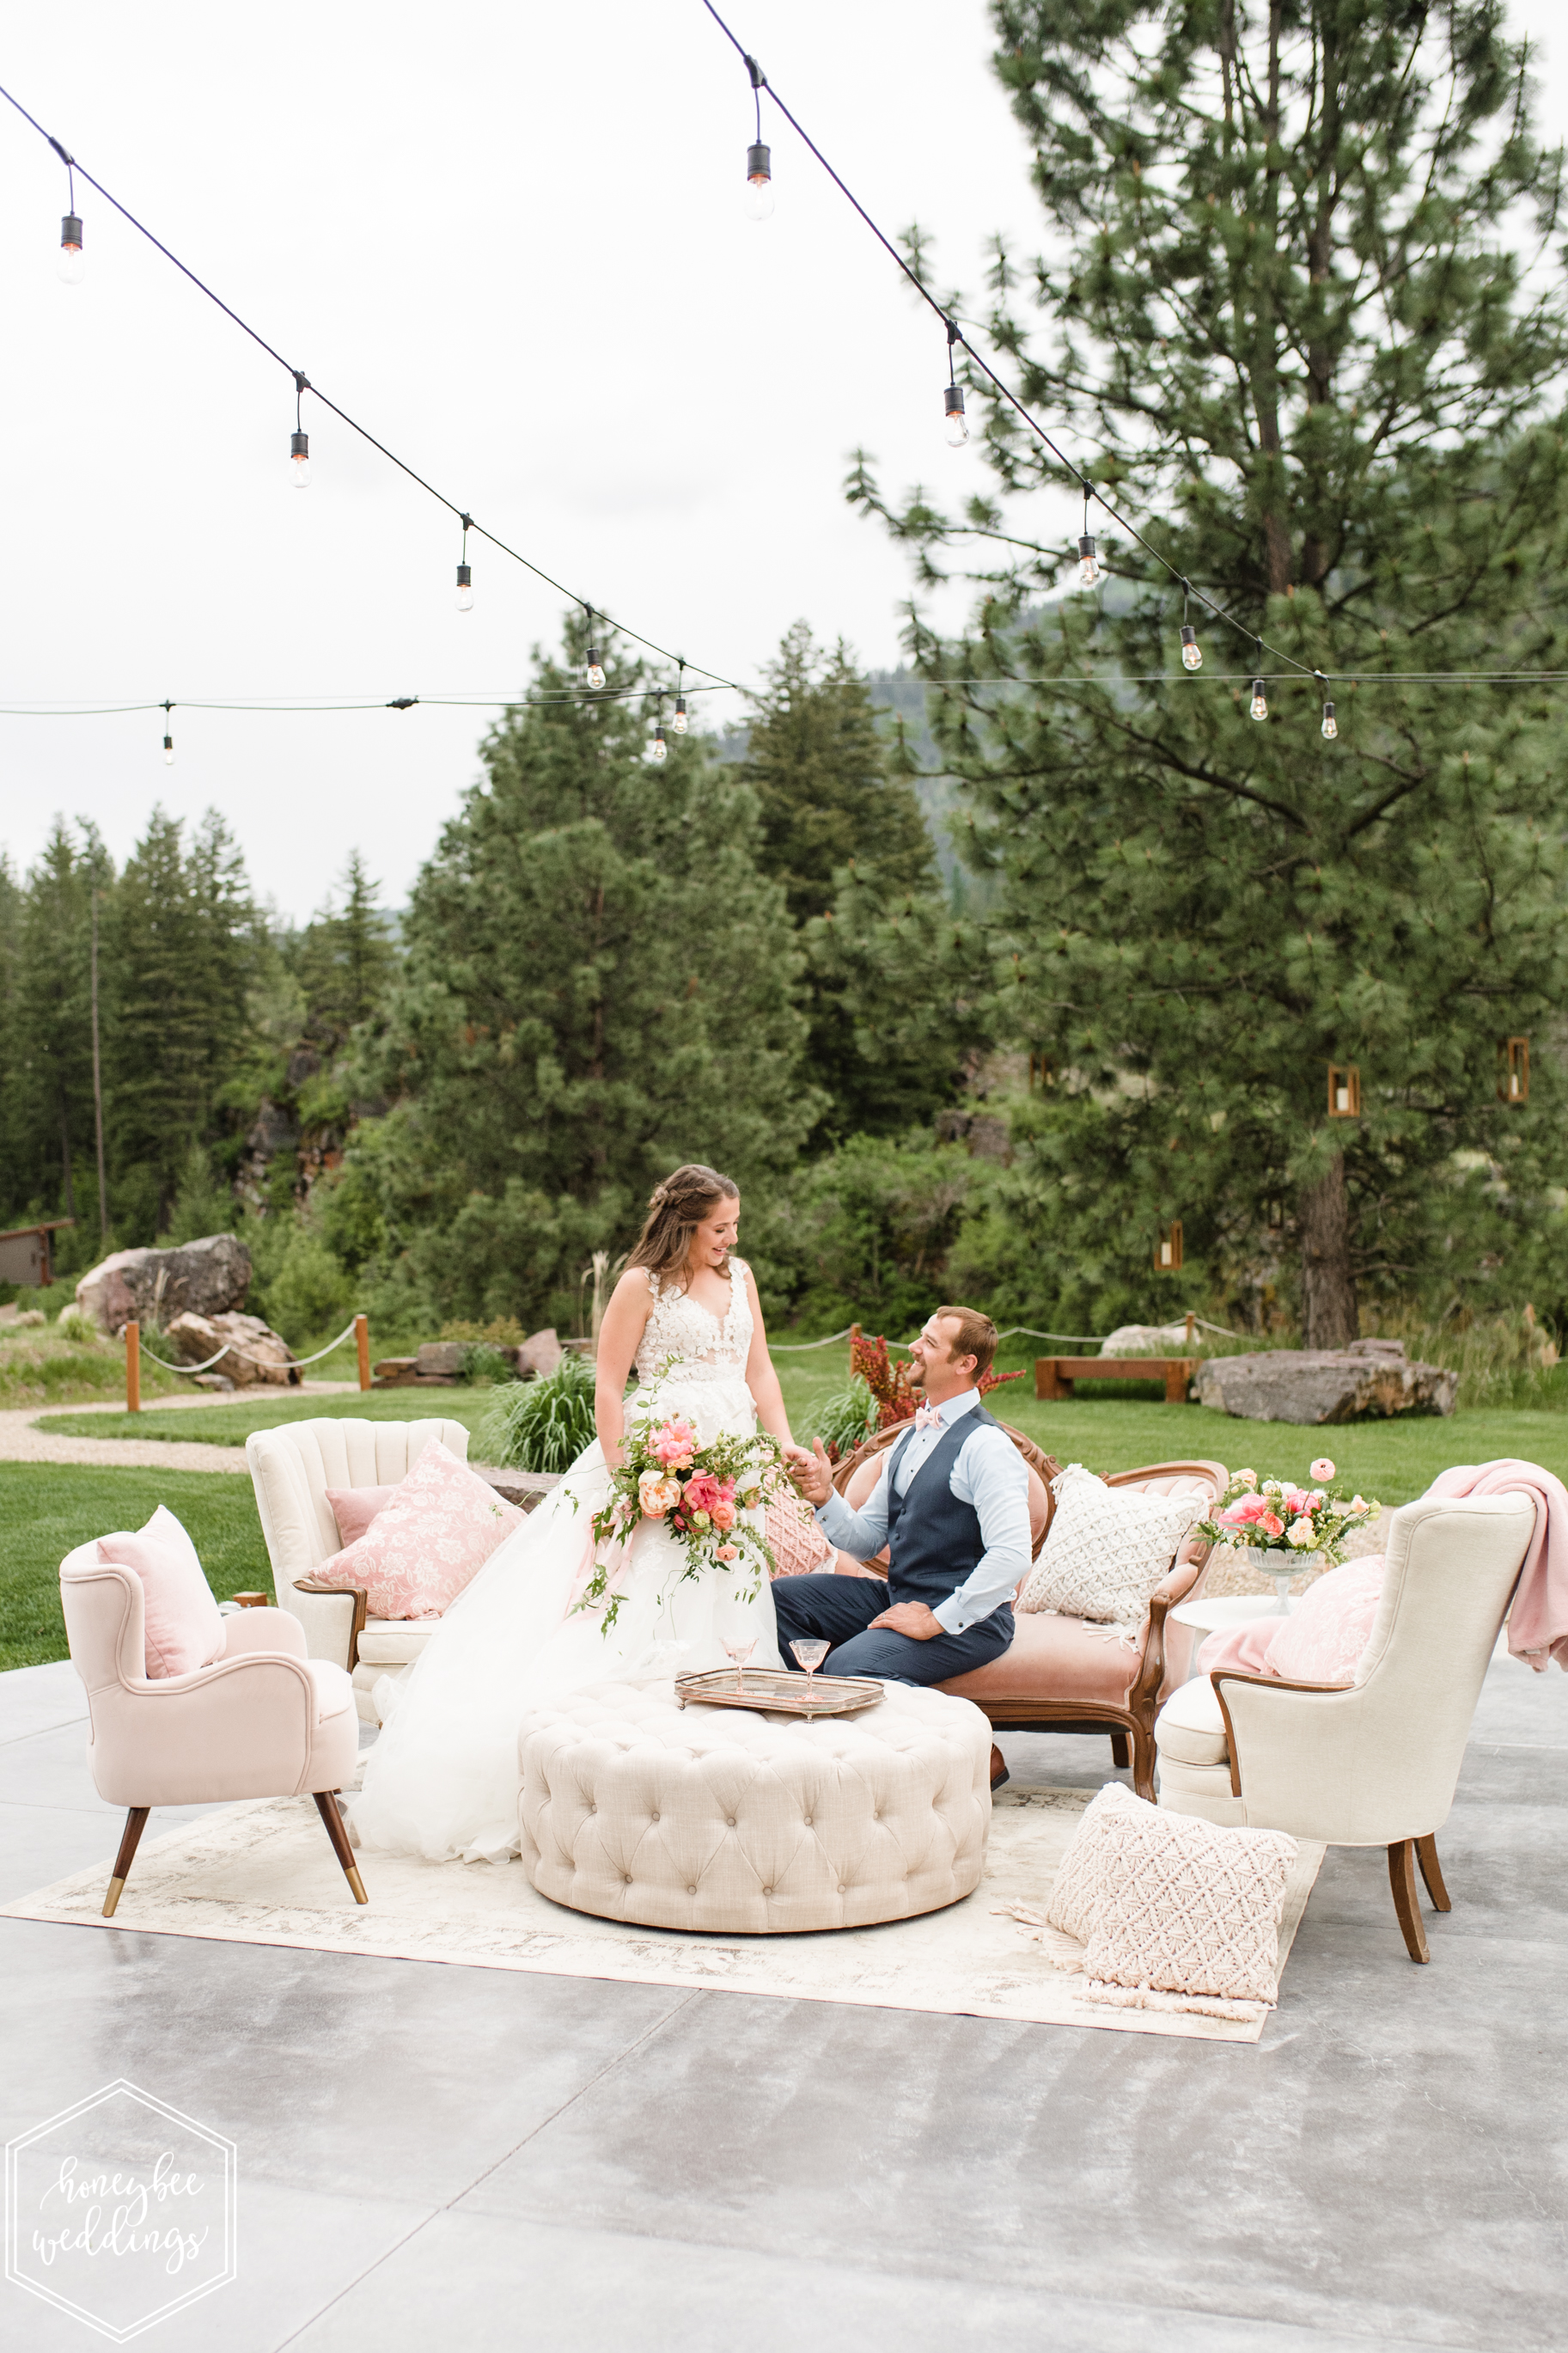 088Coral Mountain Wedding at White Raven_Honeybee Weddings_May 23, 2019-314.jpg